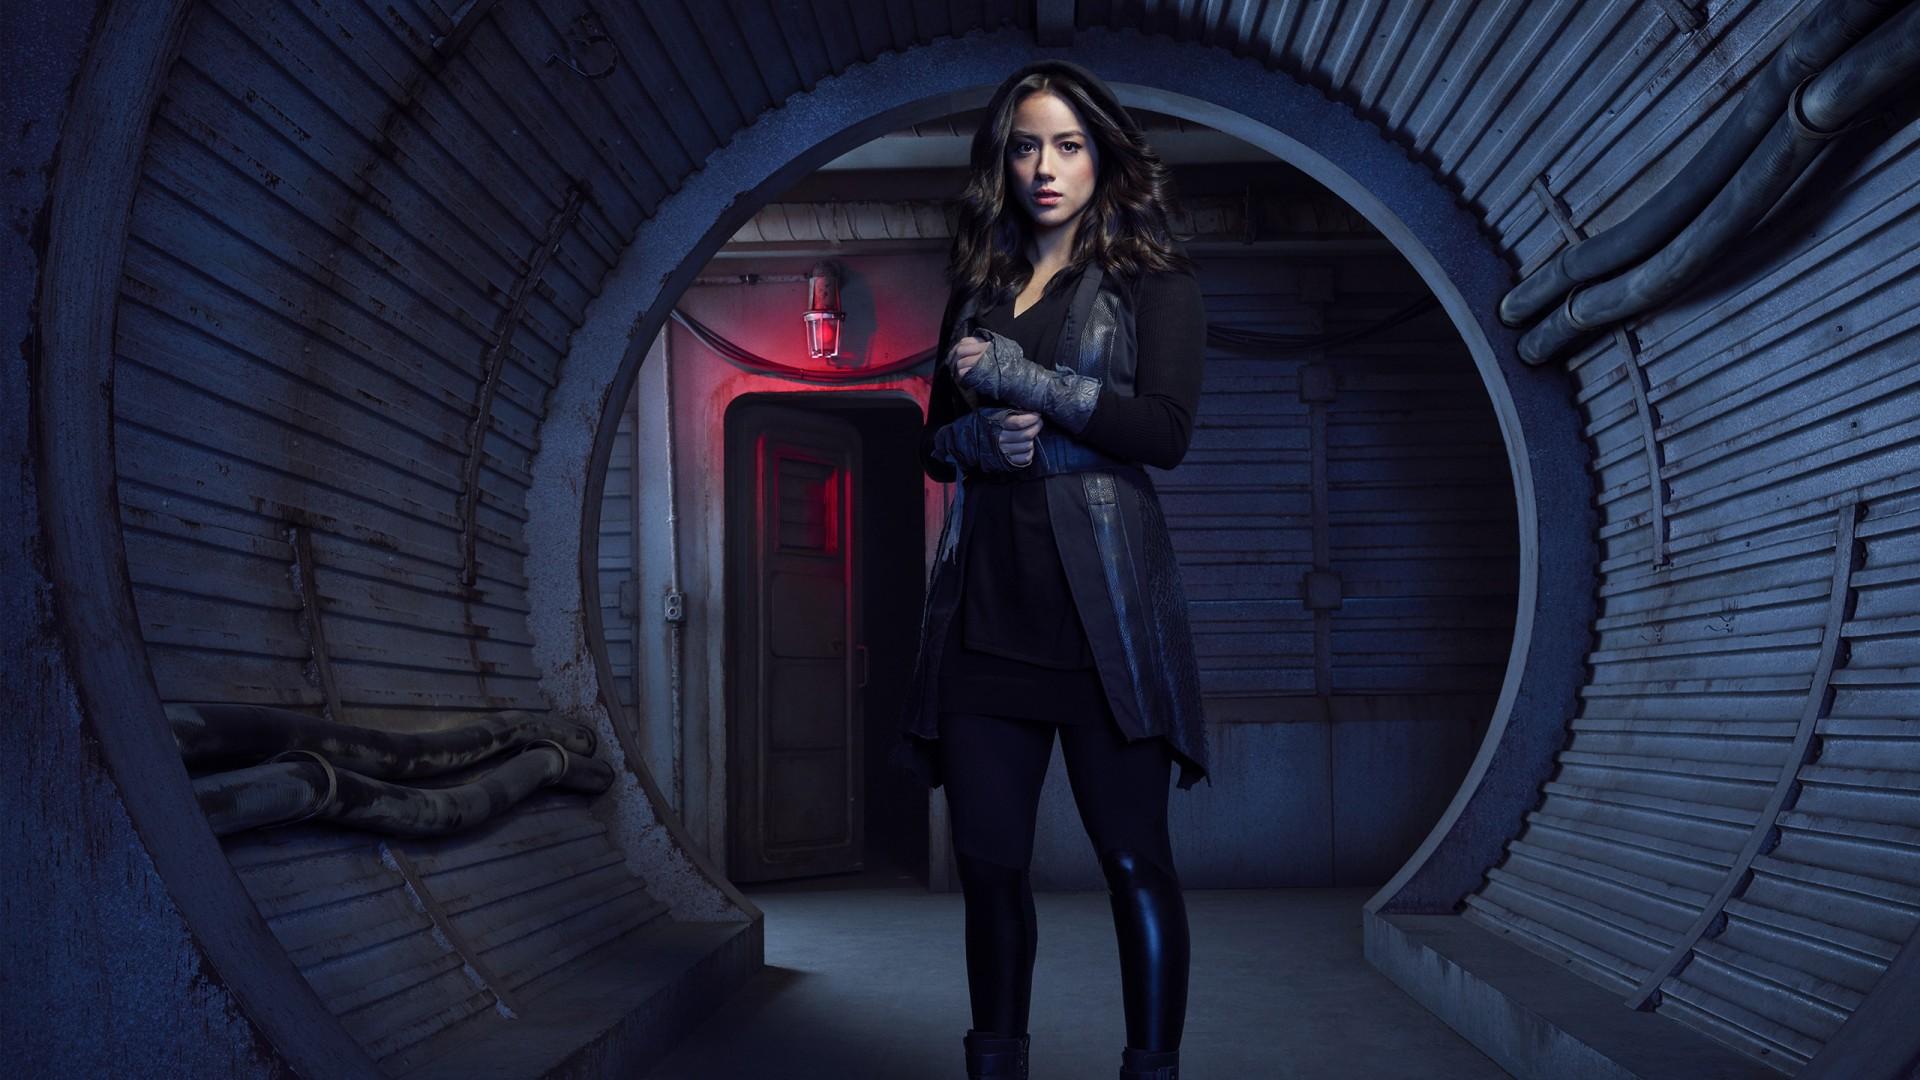 Original Iphone Wallpaper Earth Chloe Bennet As Daisy Johnson Agents Of Shield Season 5